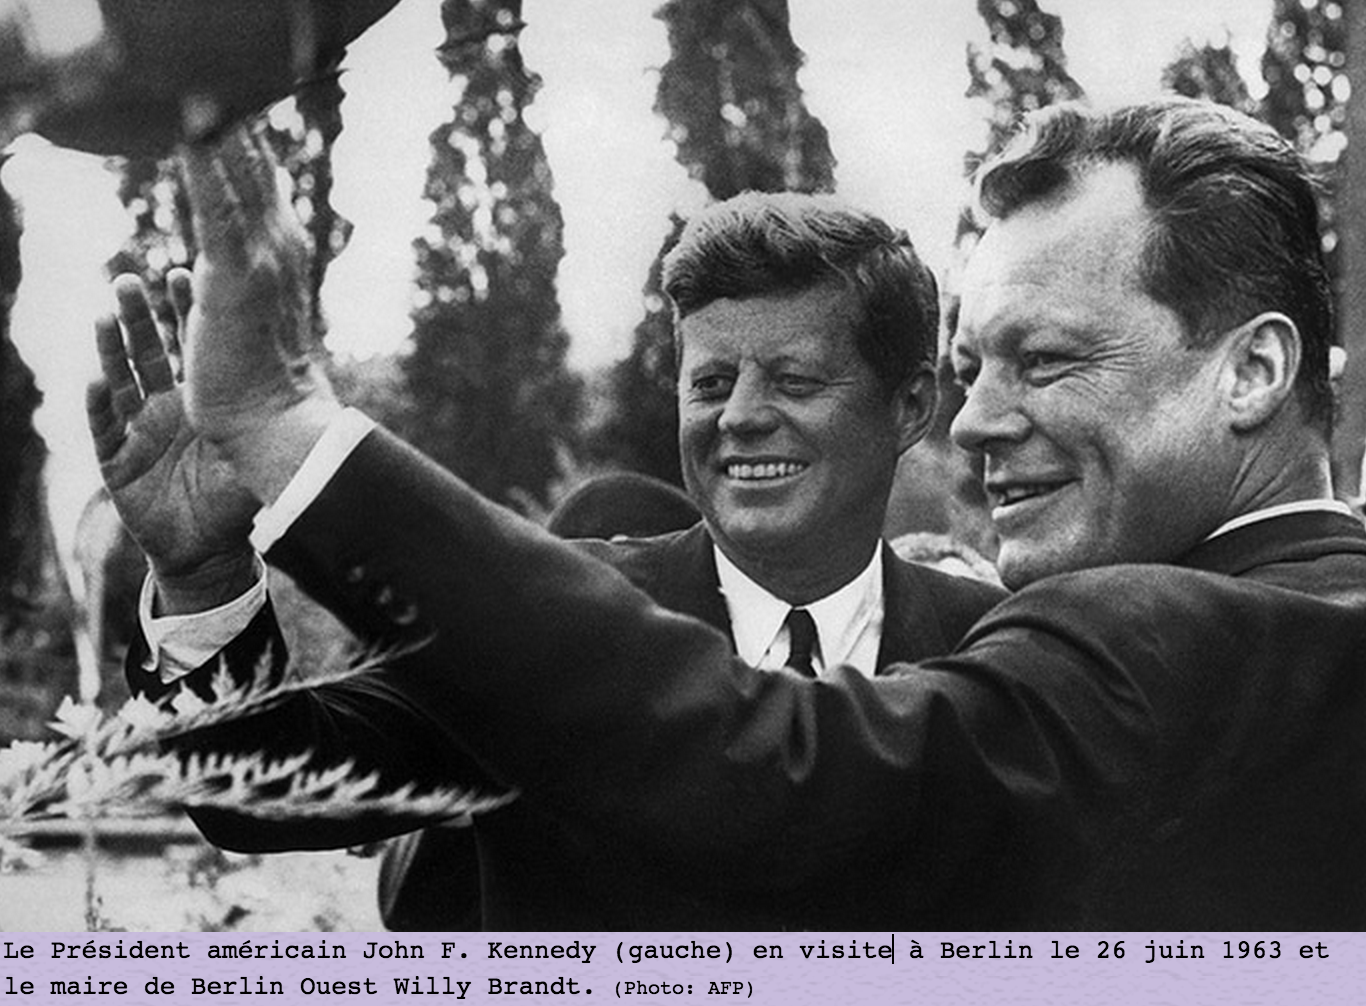 John f kennedy et willy brandt